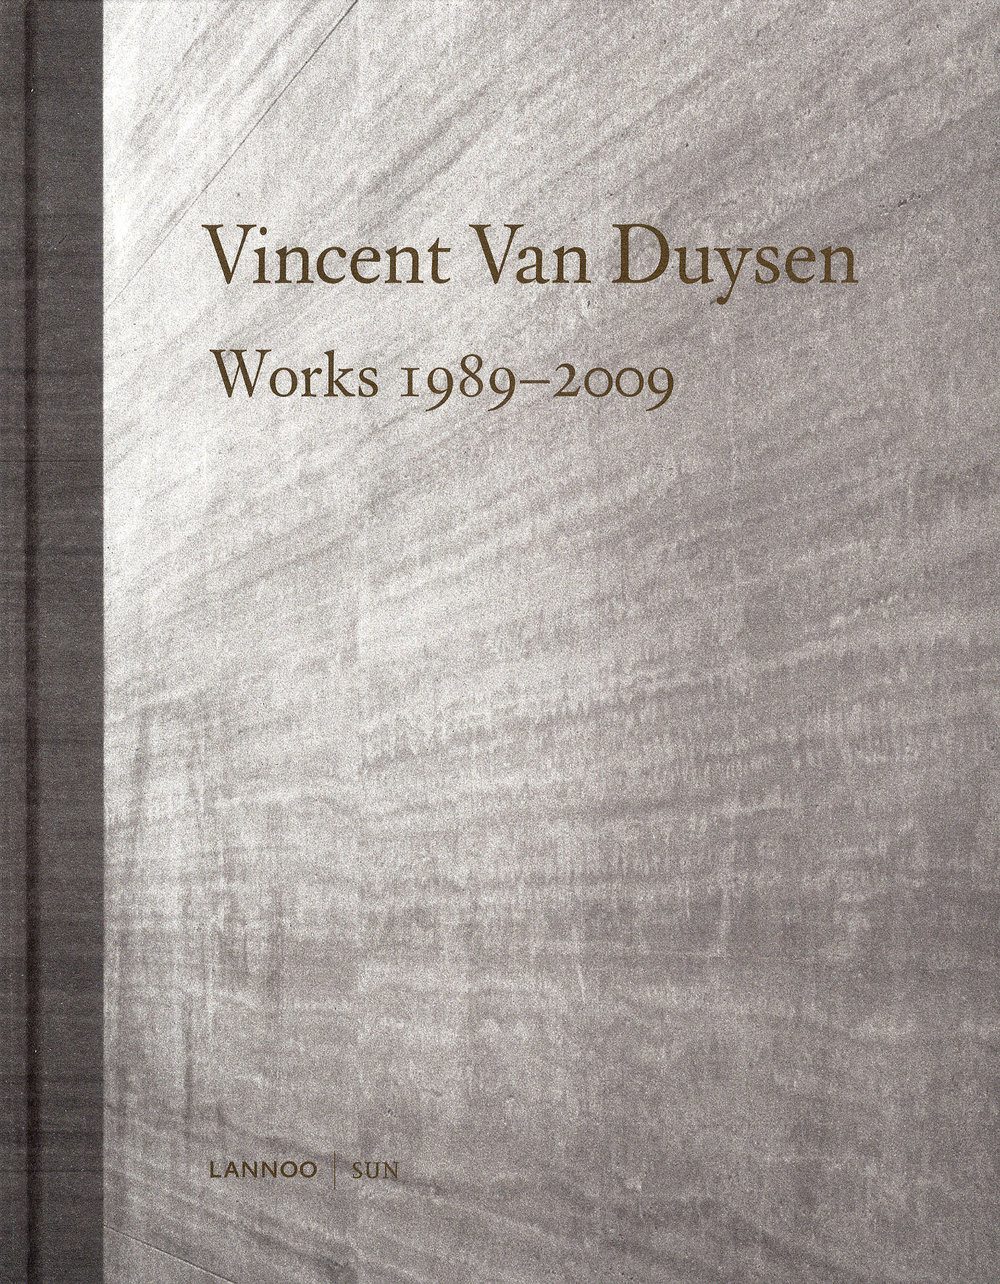 1. Vincent Van Duysen: Complete Works by Ilse Crawford